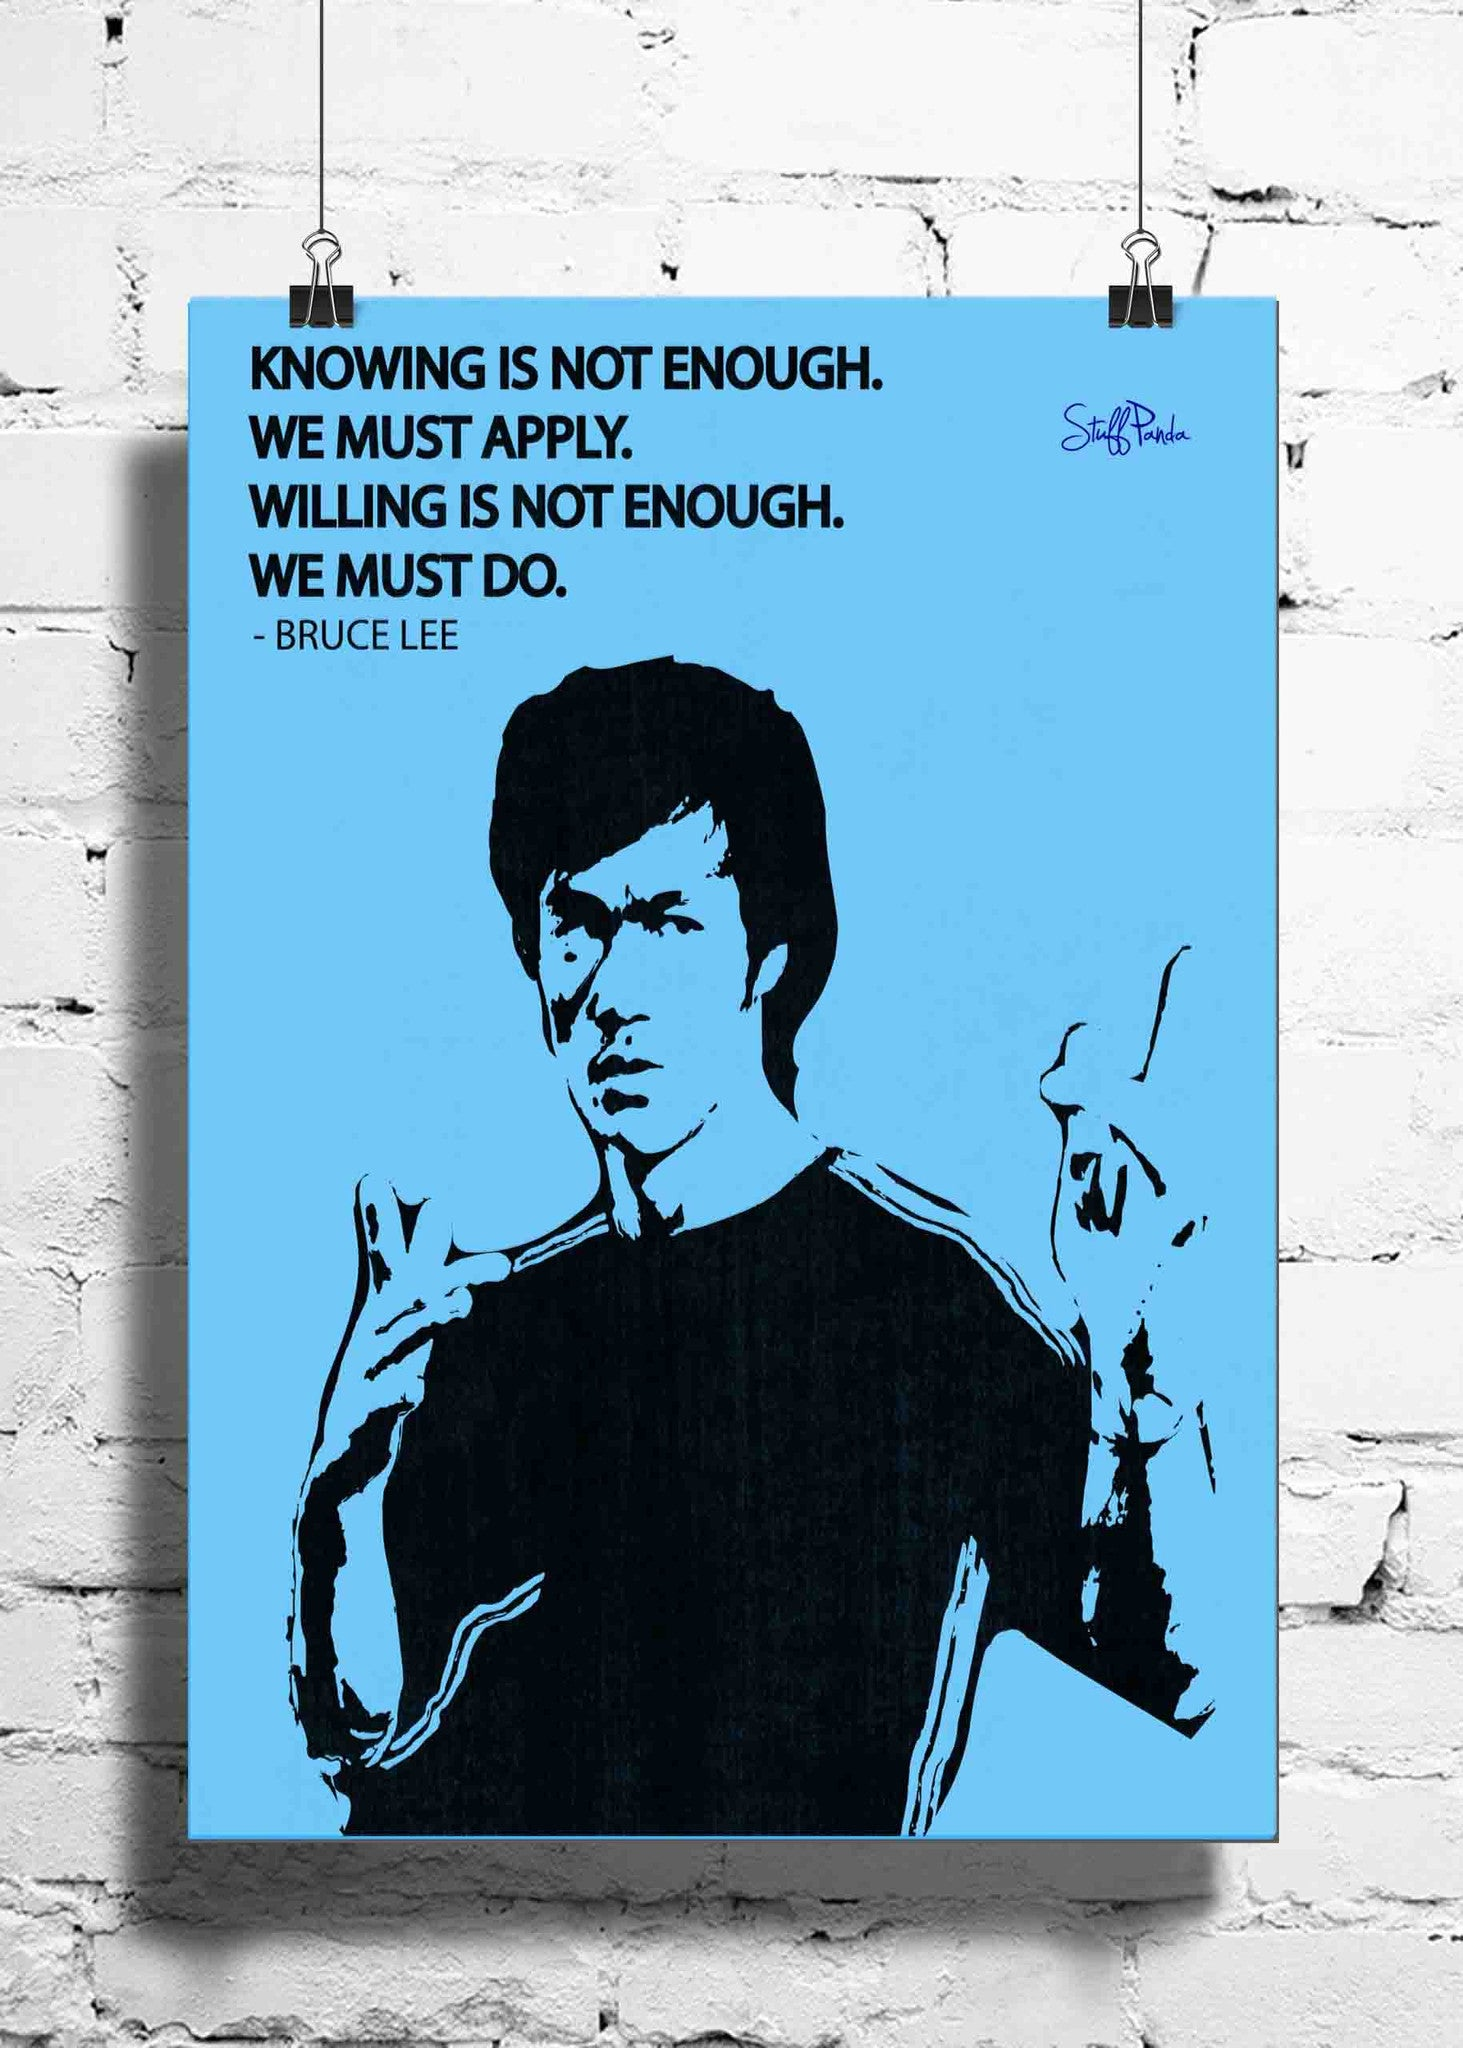 Cool Abstract Motivation Bruce Lee Knowing not wall posters, art prints, stickers decals - stuffpanda - 1